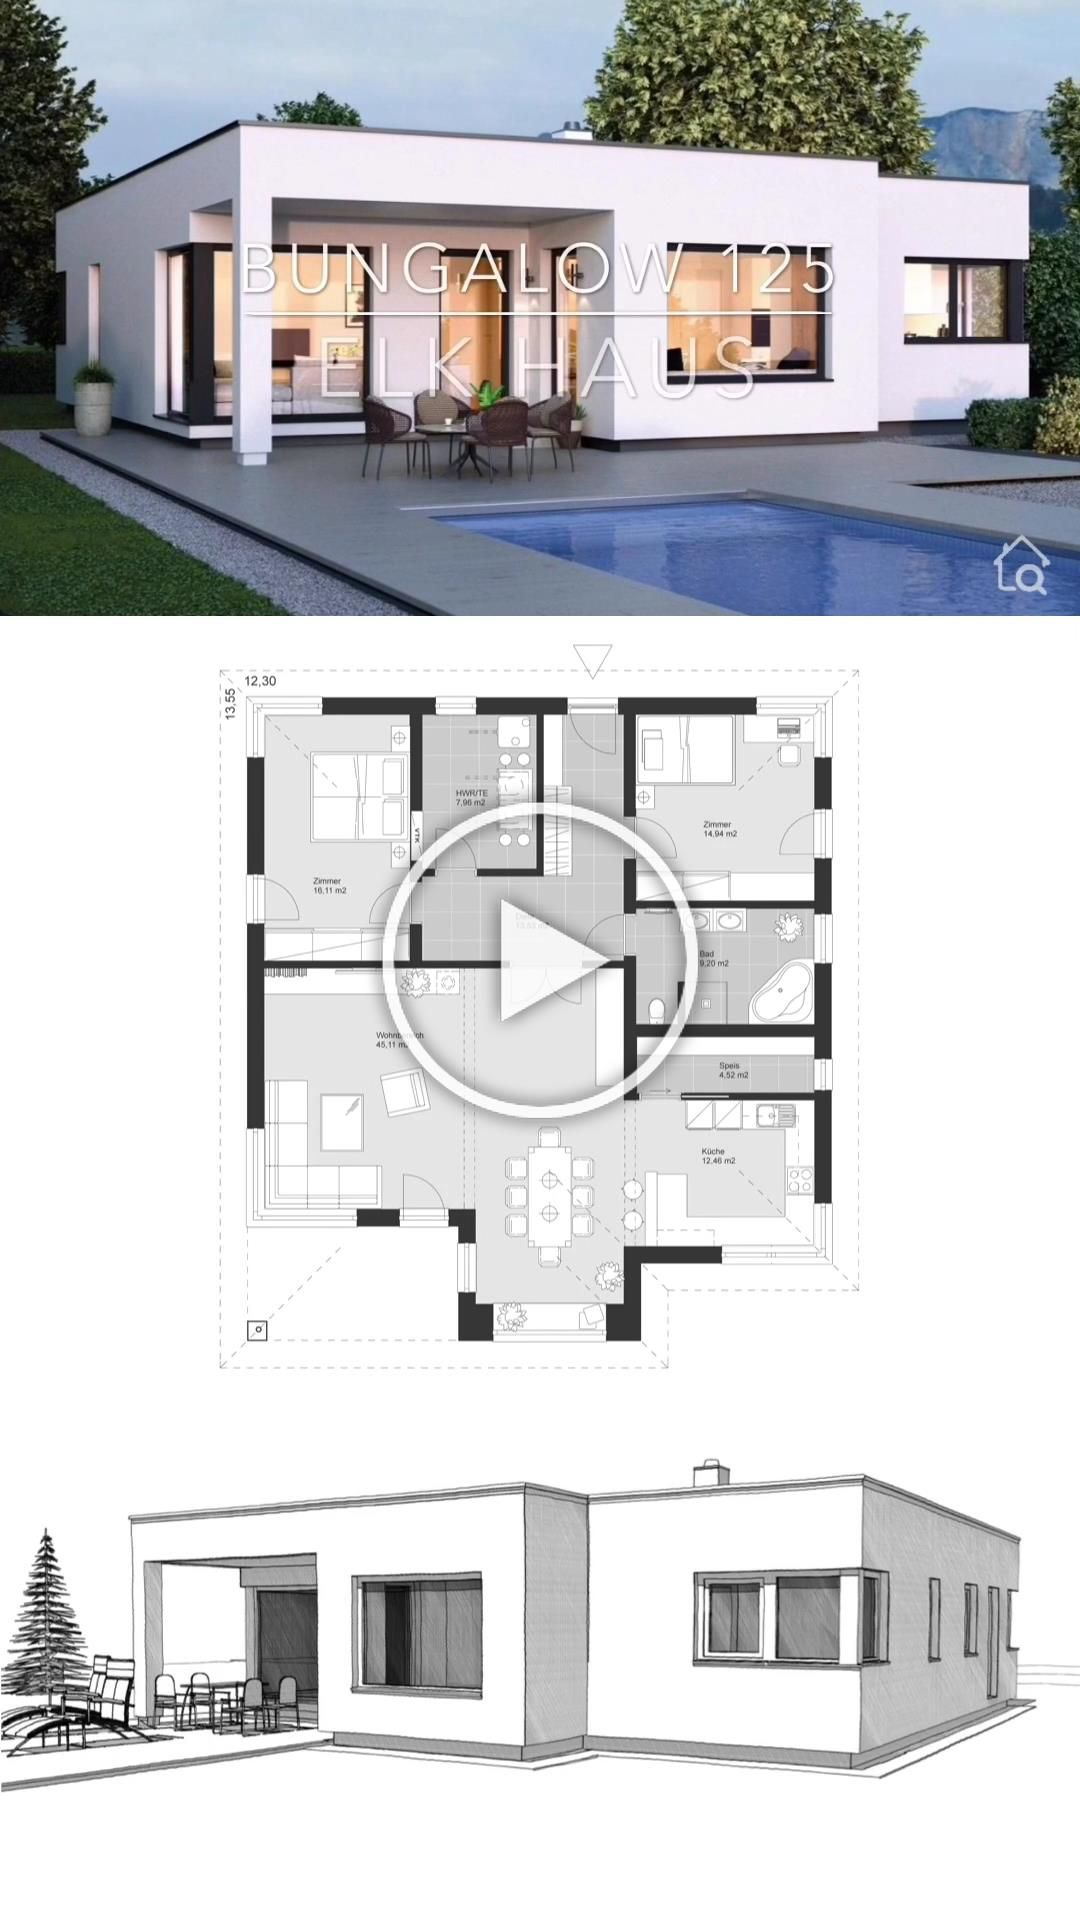 Bungalow House Plans One Level With Open Floor Modern Contemporary European Minimalist Style Bungalow House Plans House Construction Plan Modern Bungalow House